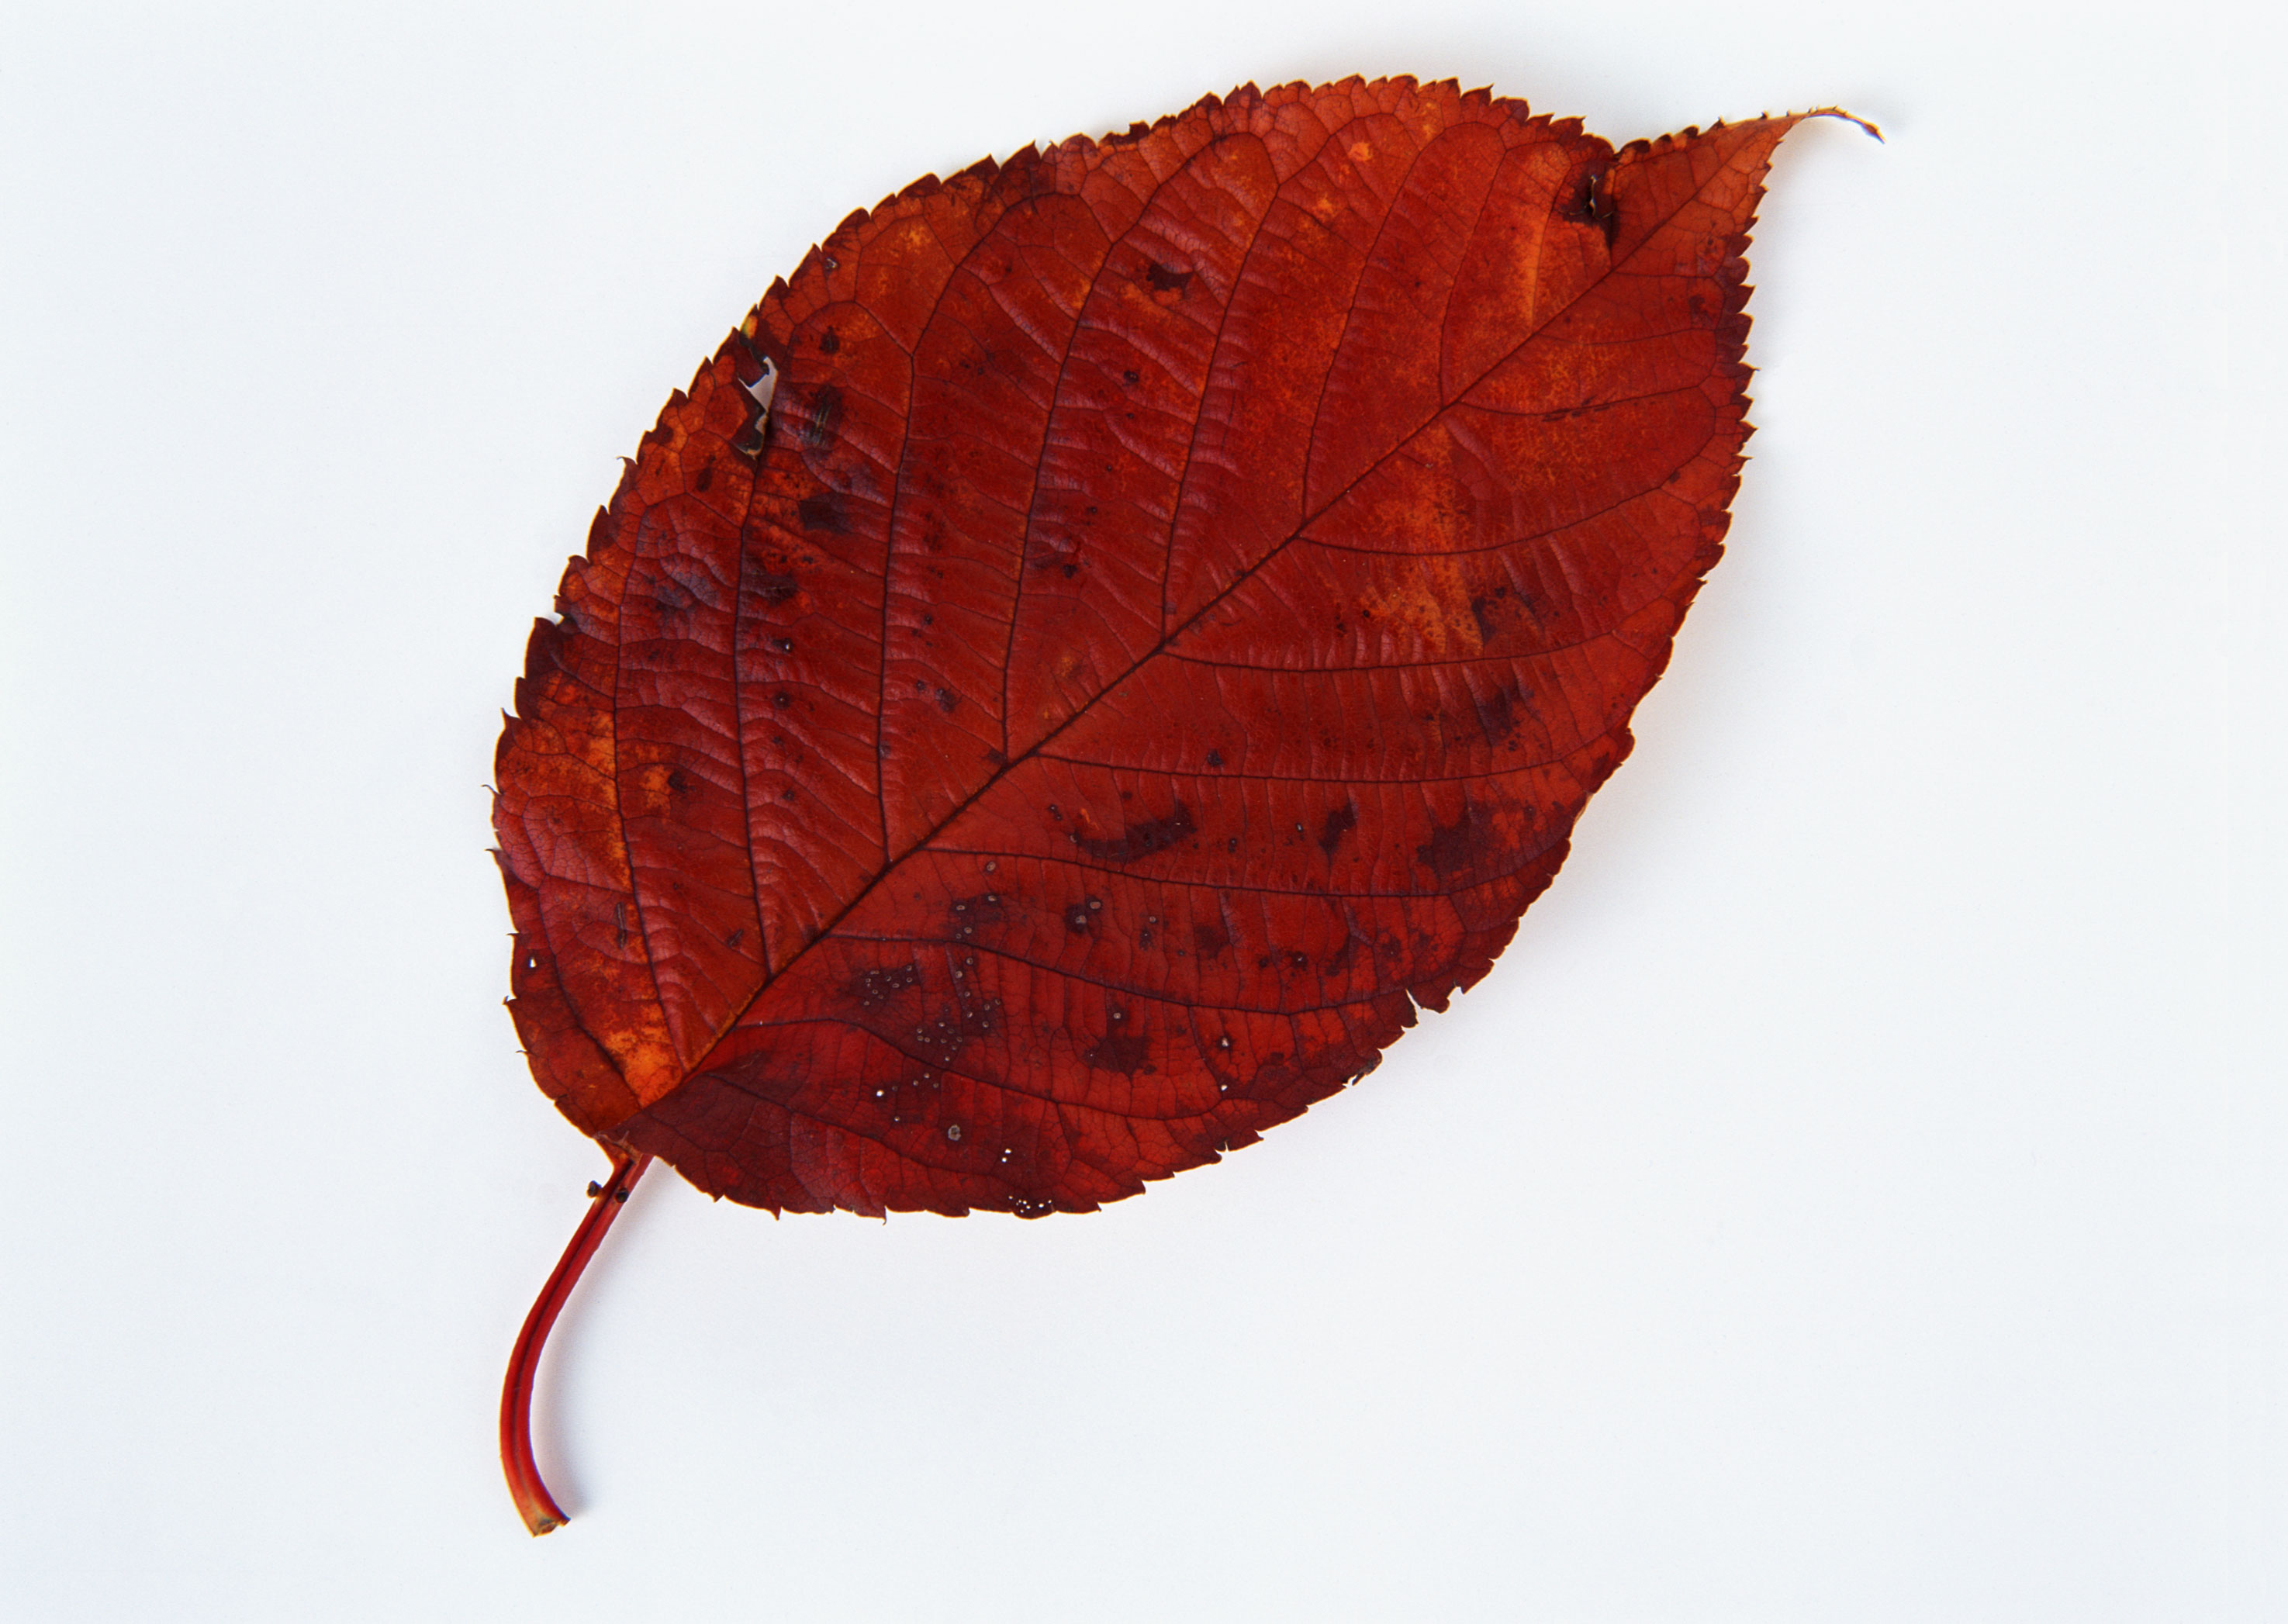 Free download high resolution image - free image free photo free stock image public domain picture -Fall leaf isolated on white background